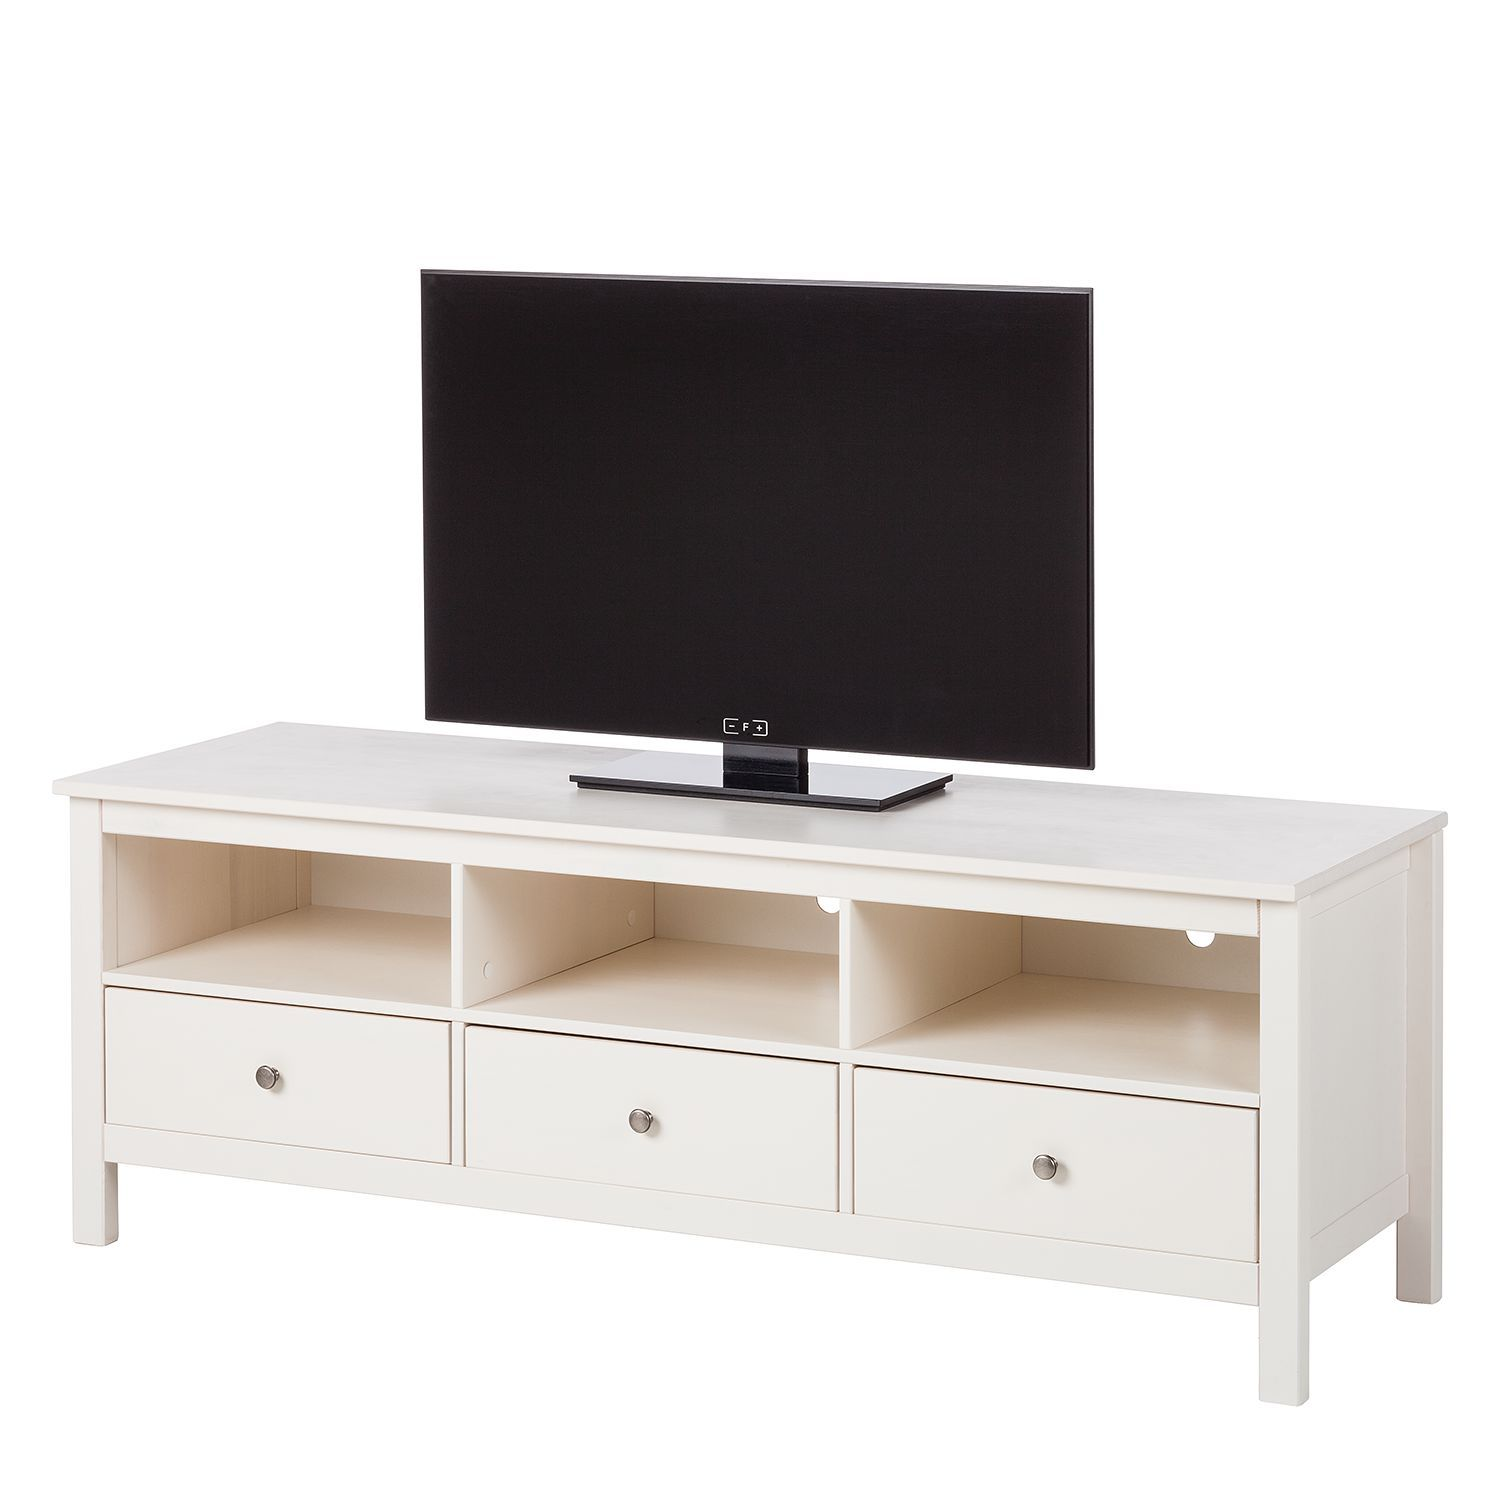 Möbelladen Online Pin By Ladendirekt On Tv Hifi Möbel Cabinet Furniture Vinyl